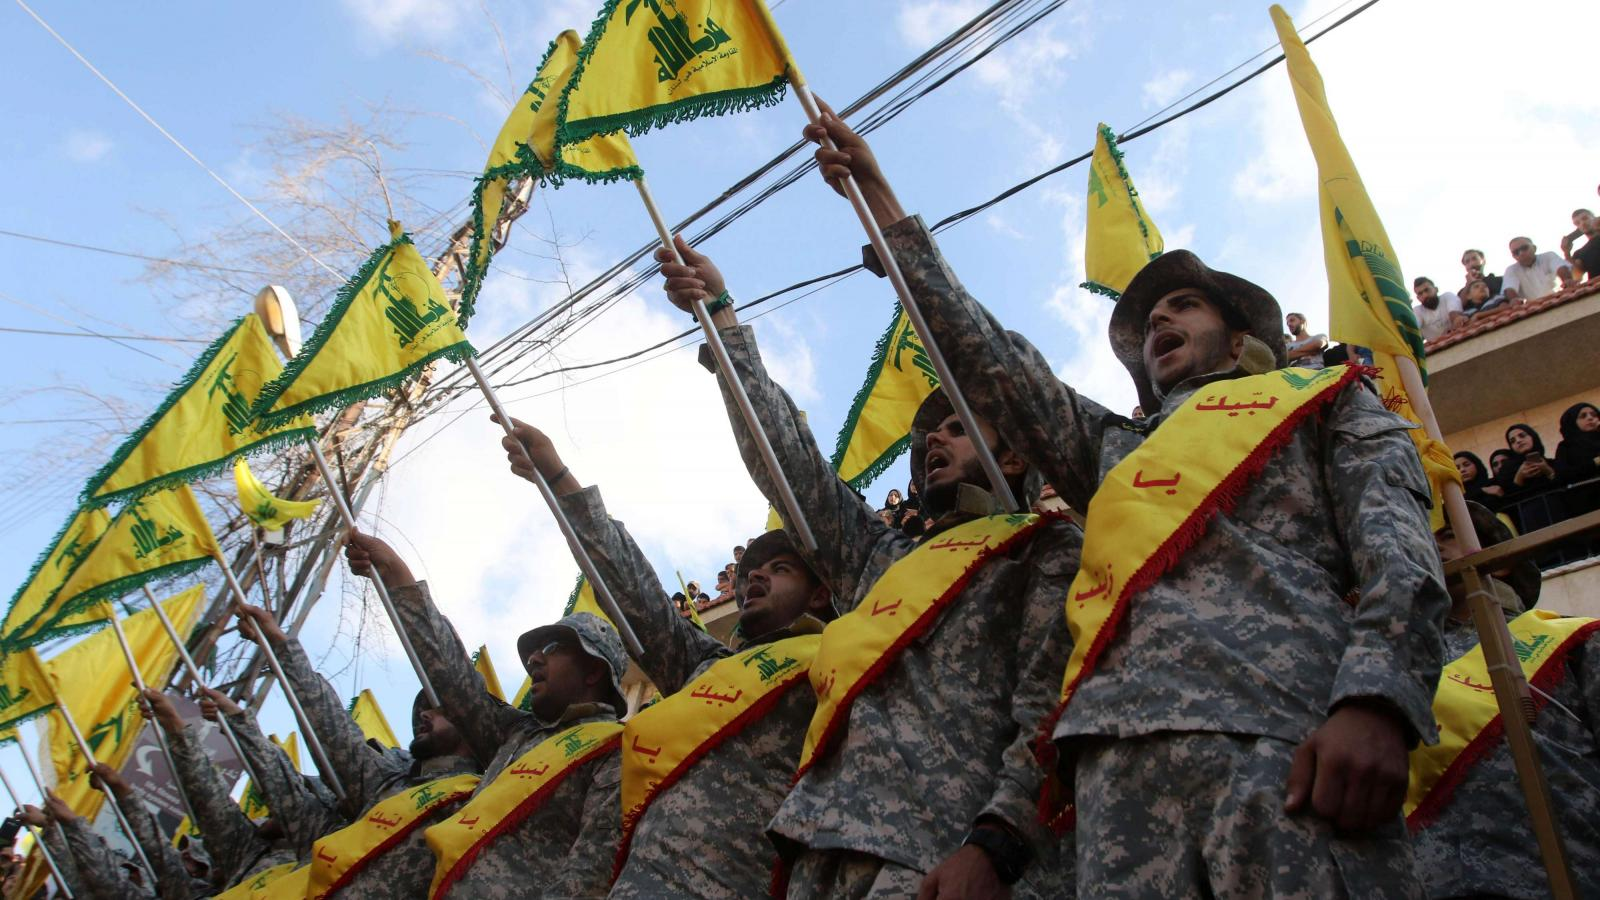 IRGC commander: Hezbollah can single-handedly wipe Israel off the map